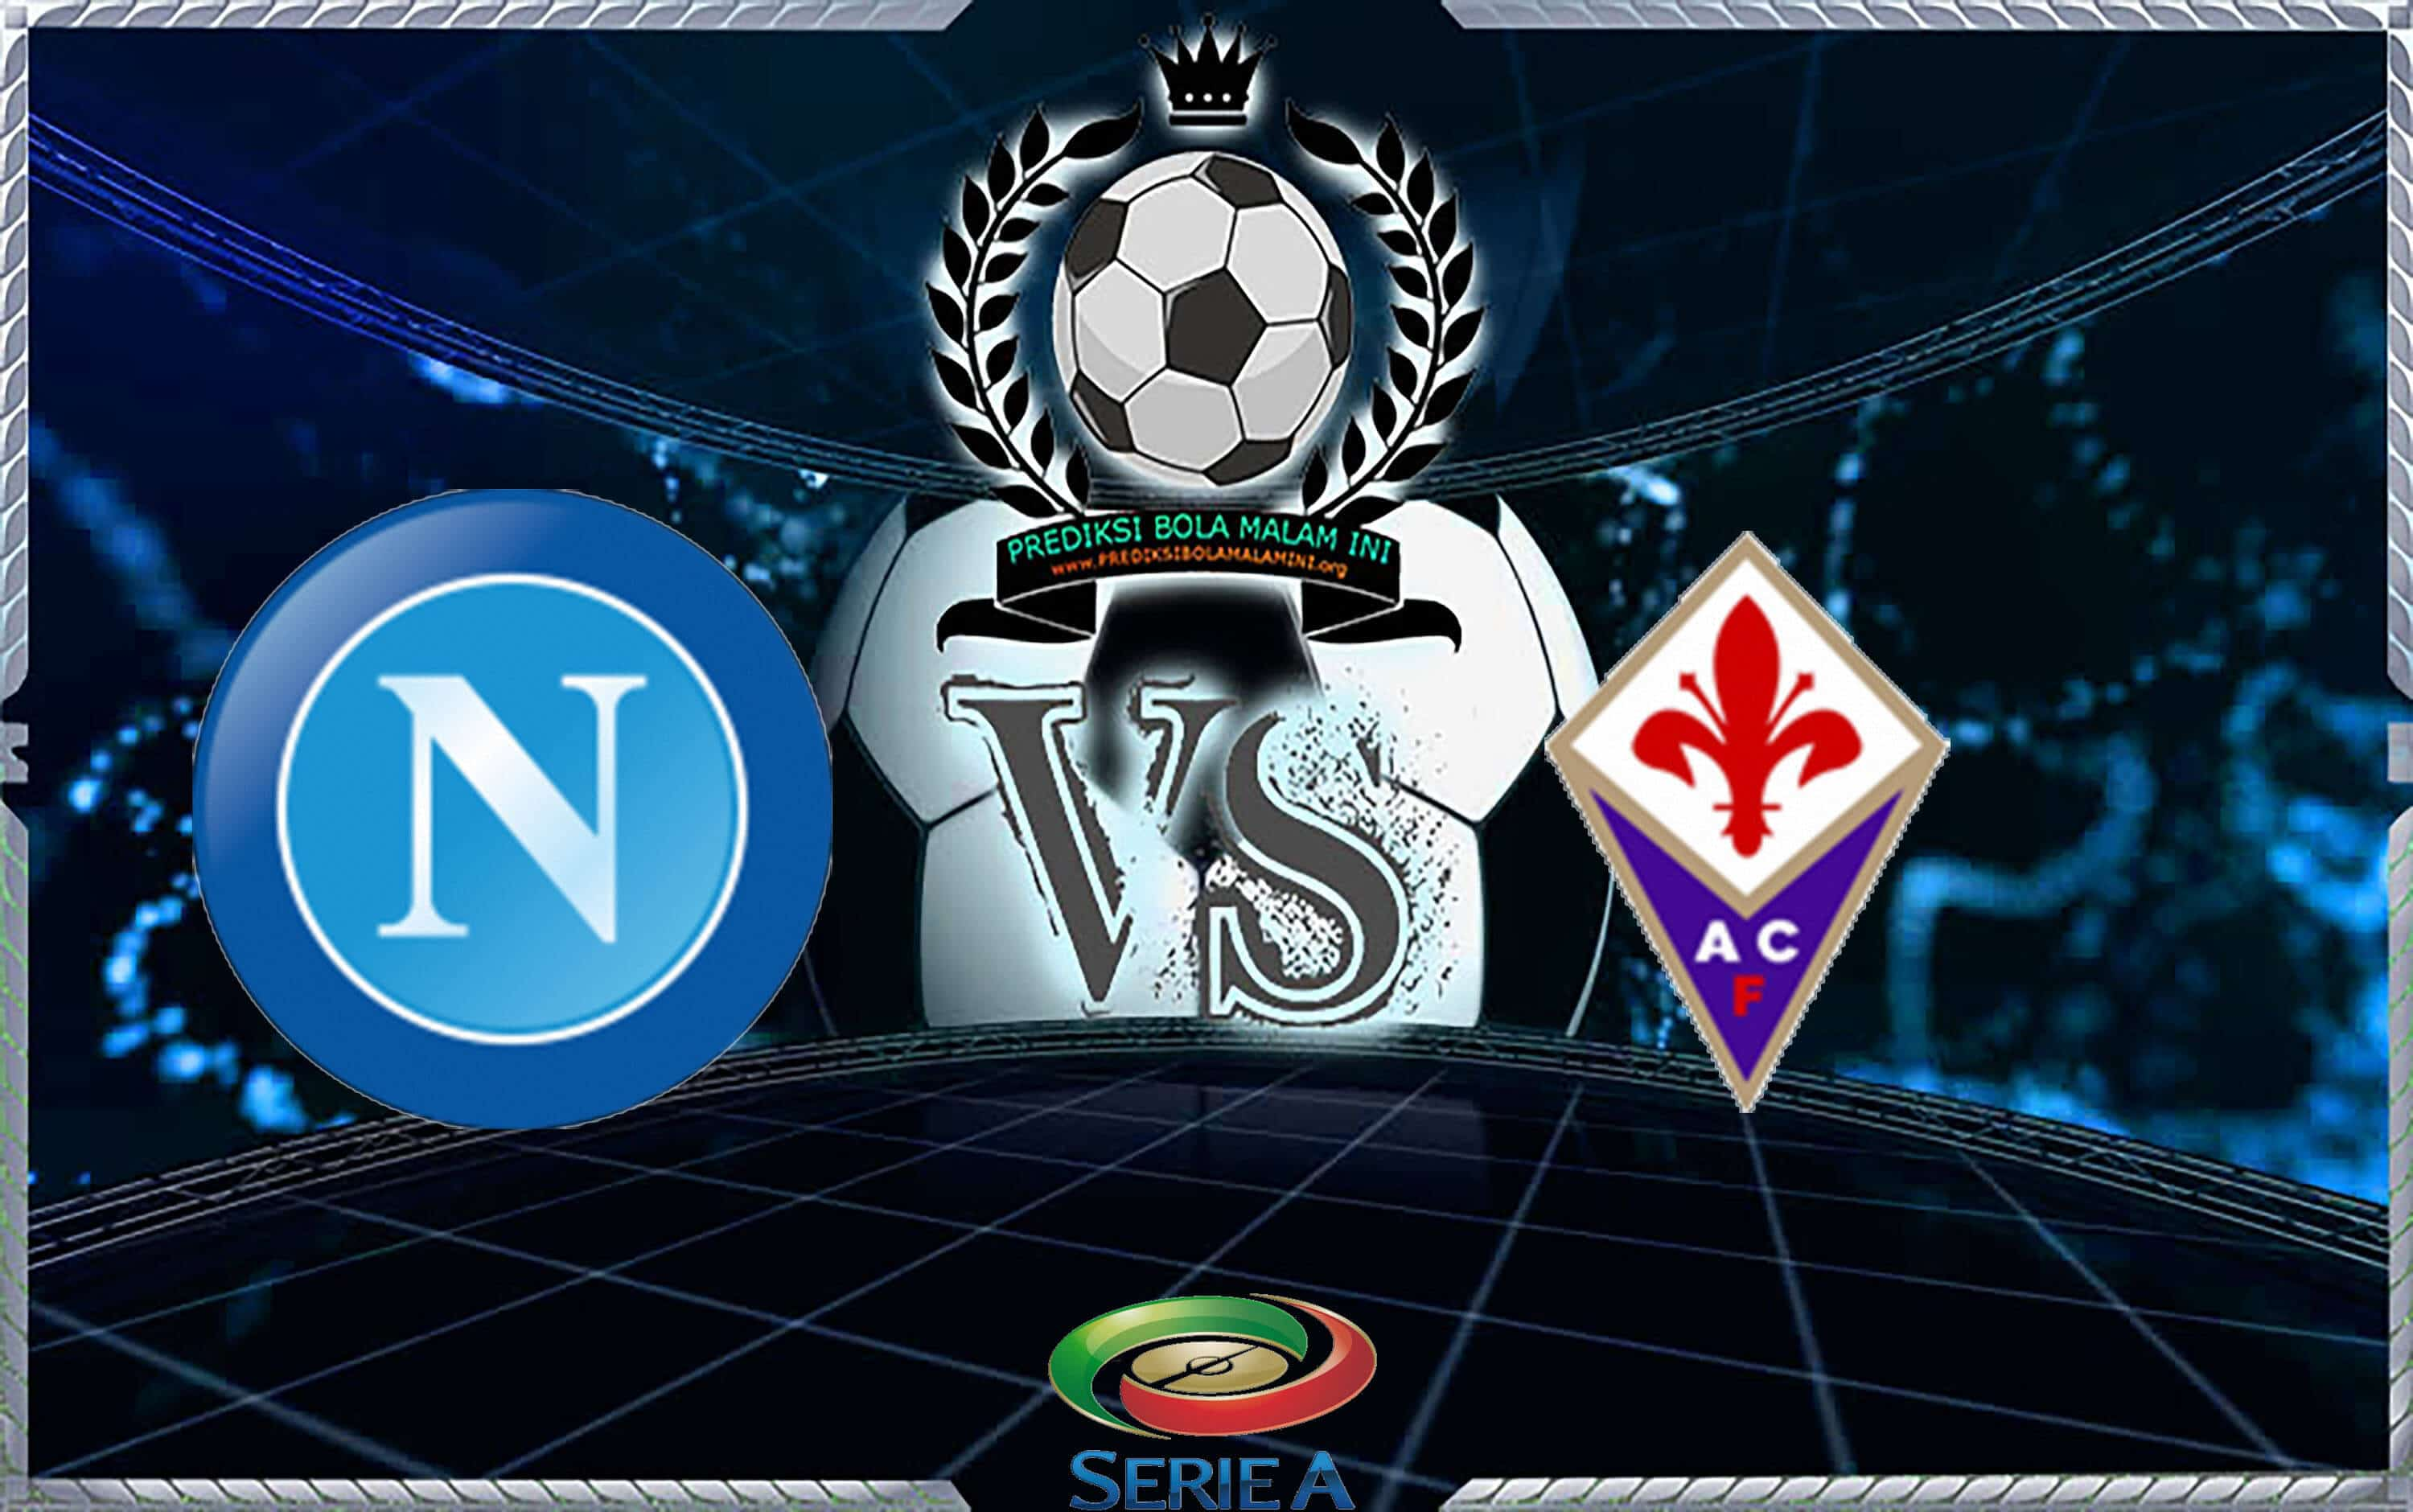 Prediksi Scor FULL Vs. FIORENTINA 15 September 2018